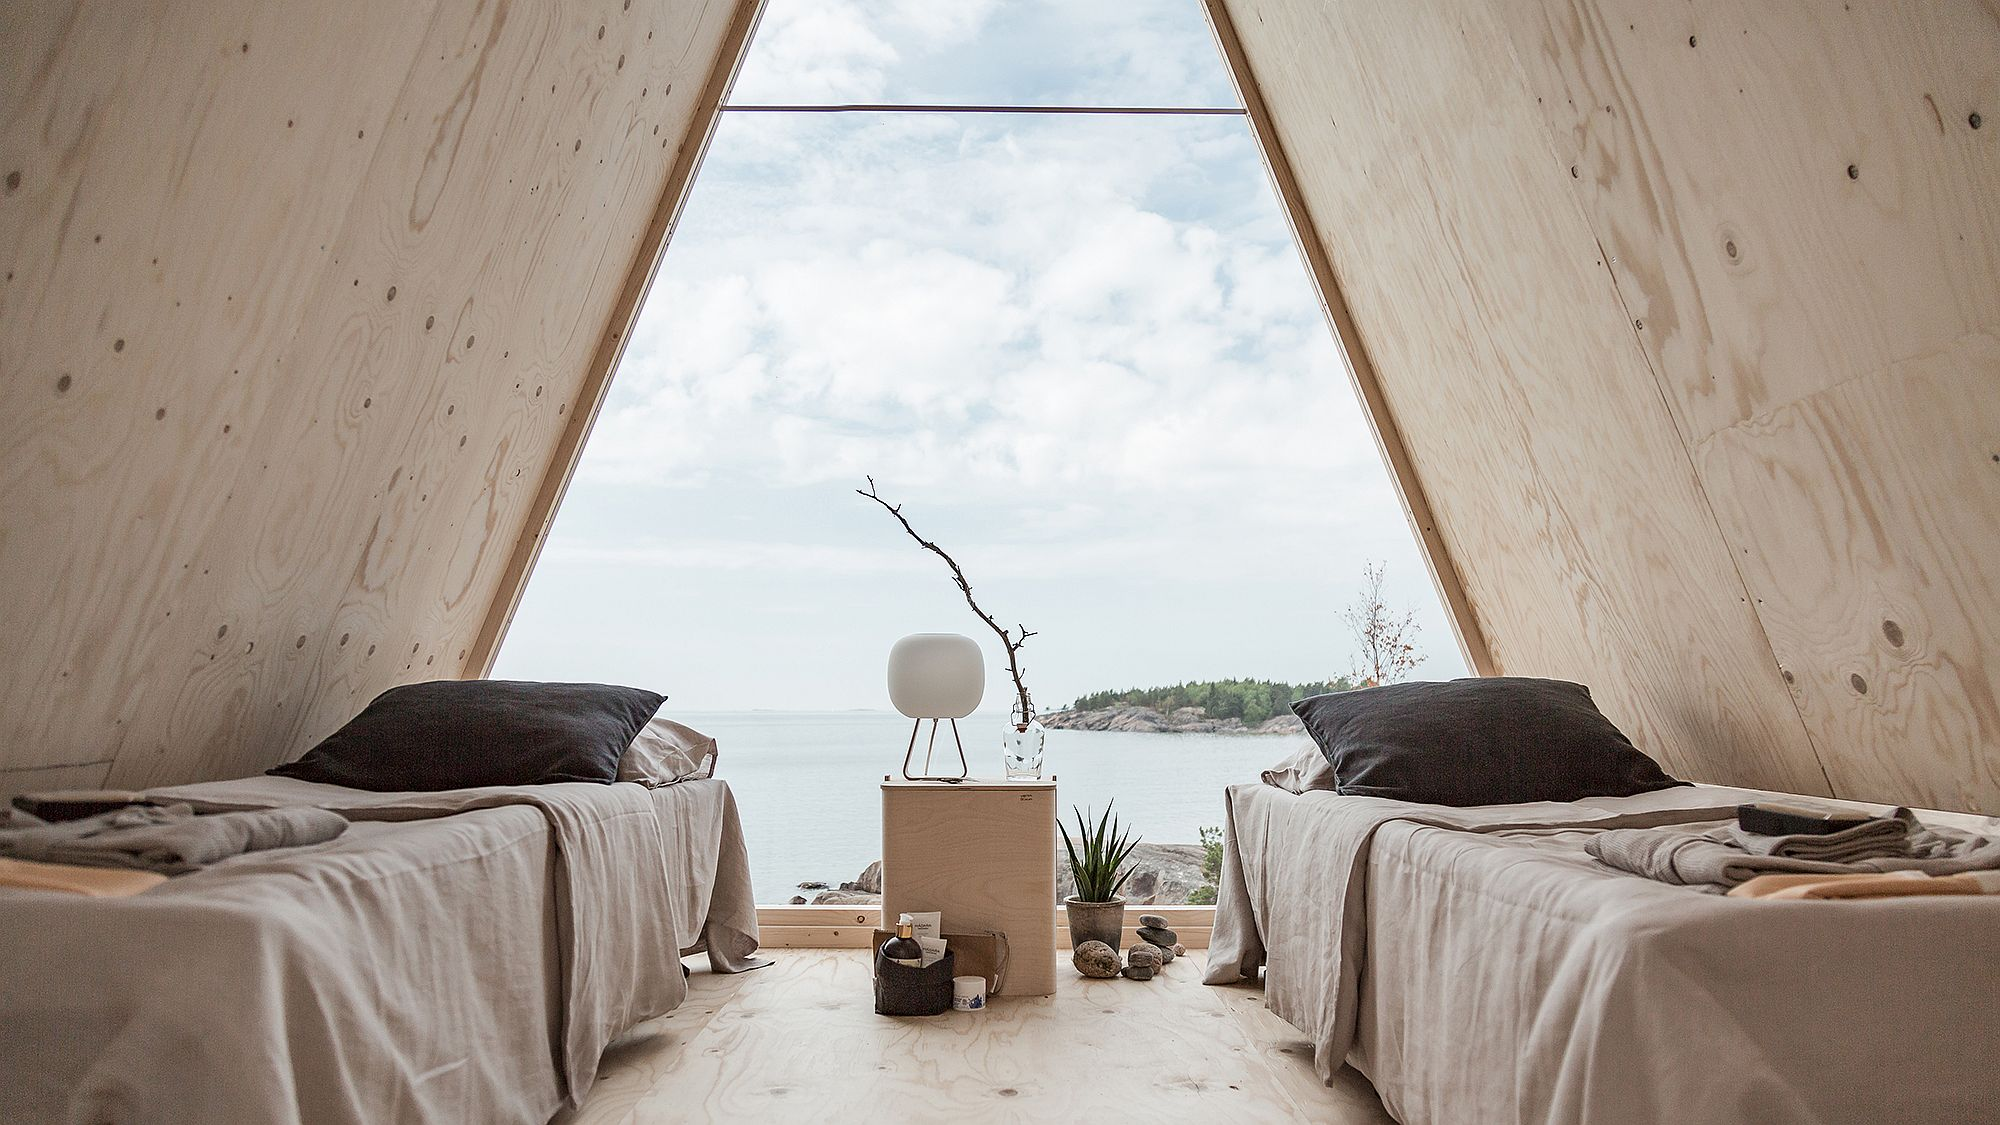 Easy-to-assemble and move, Nolla offers great off-grid living options